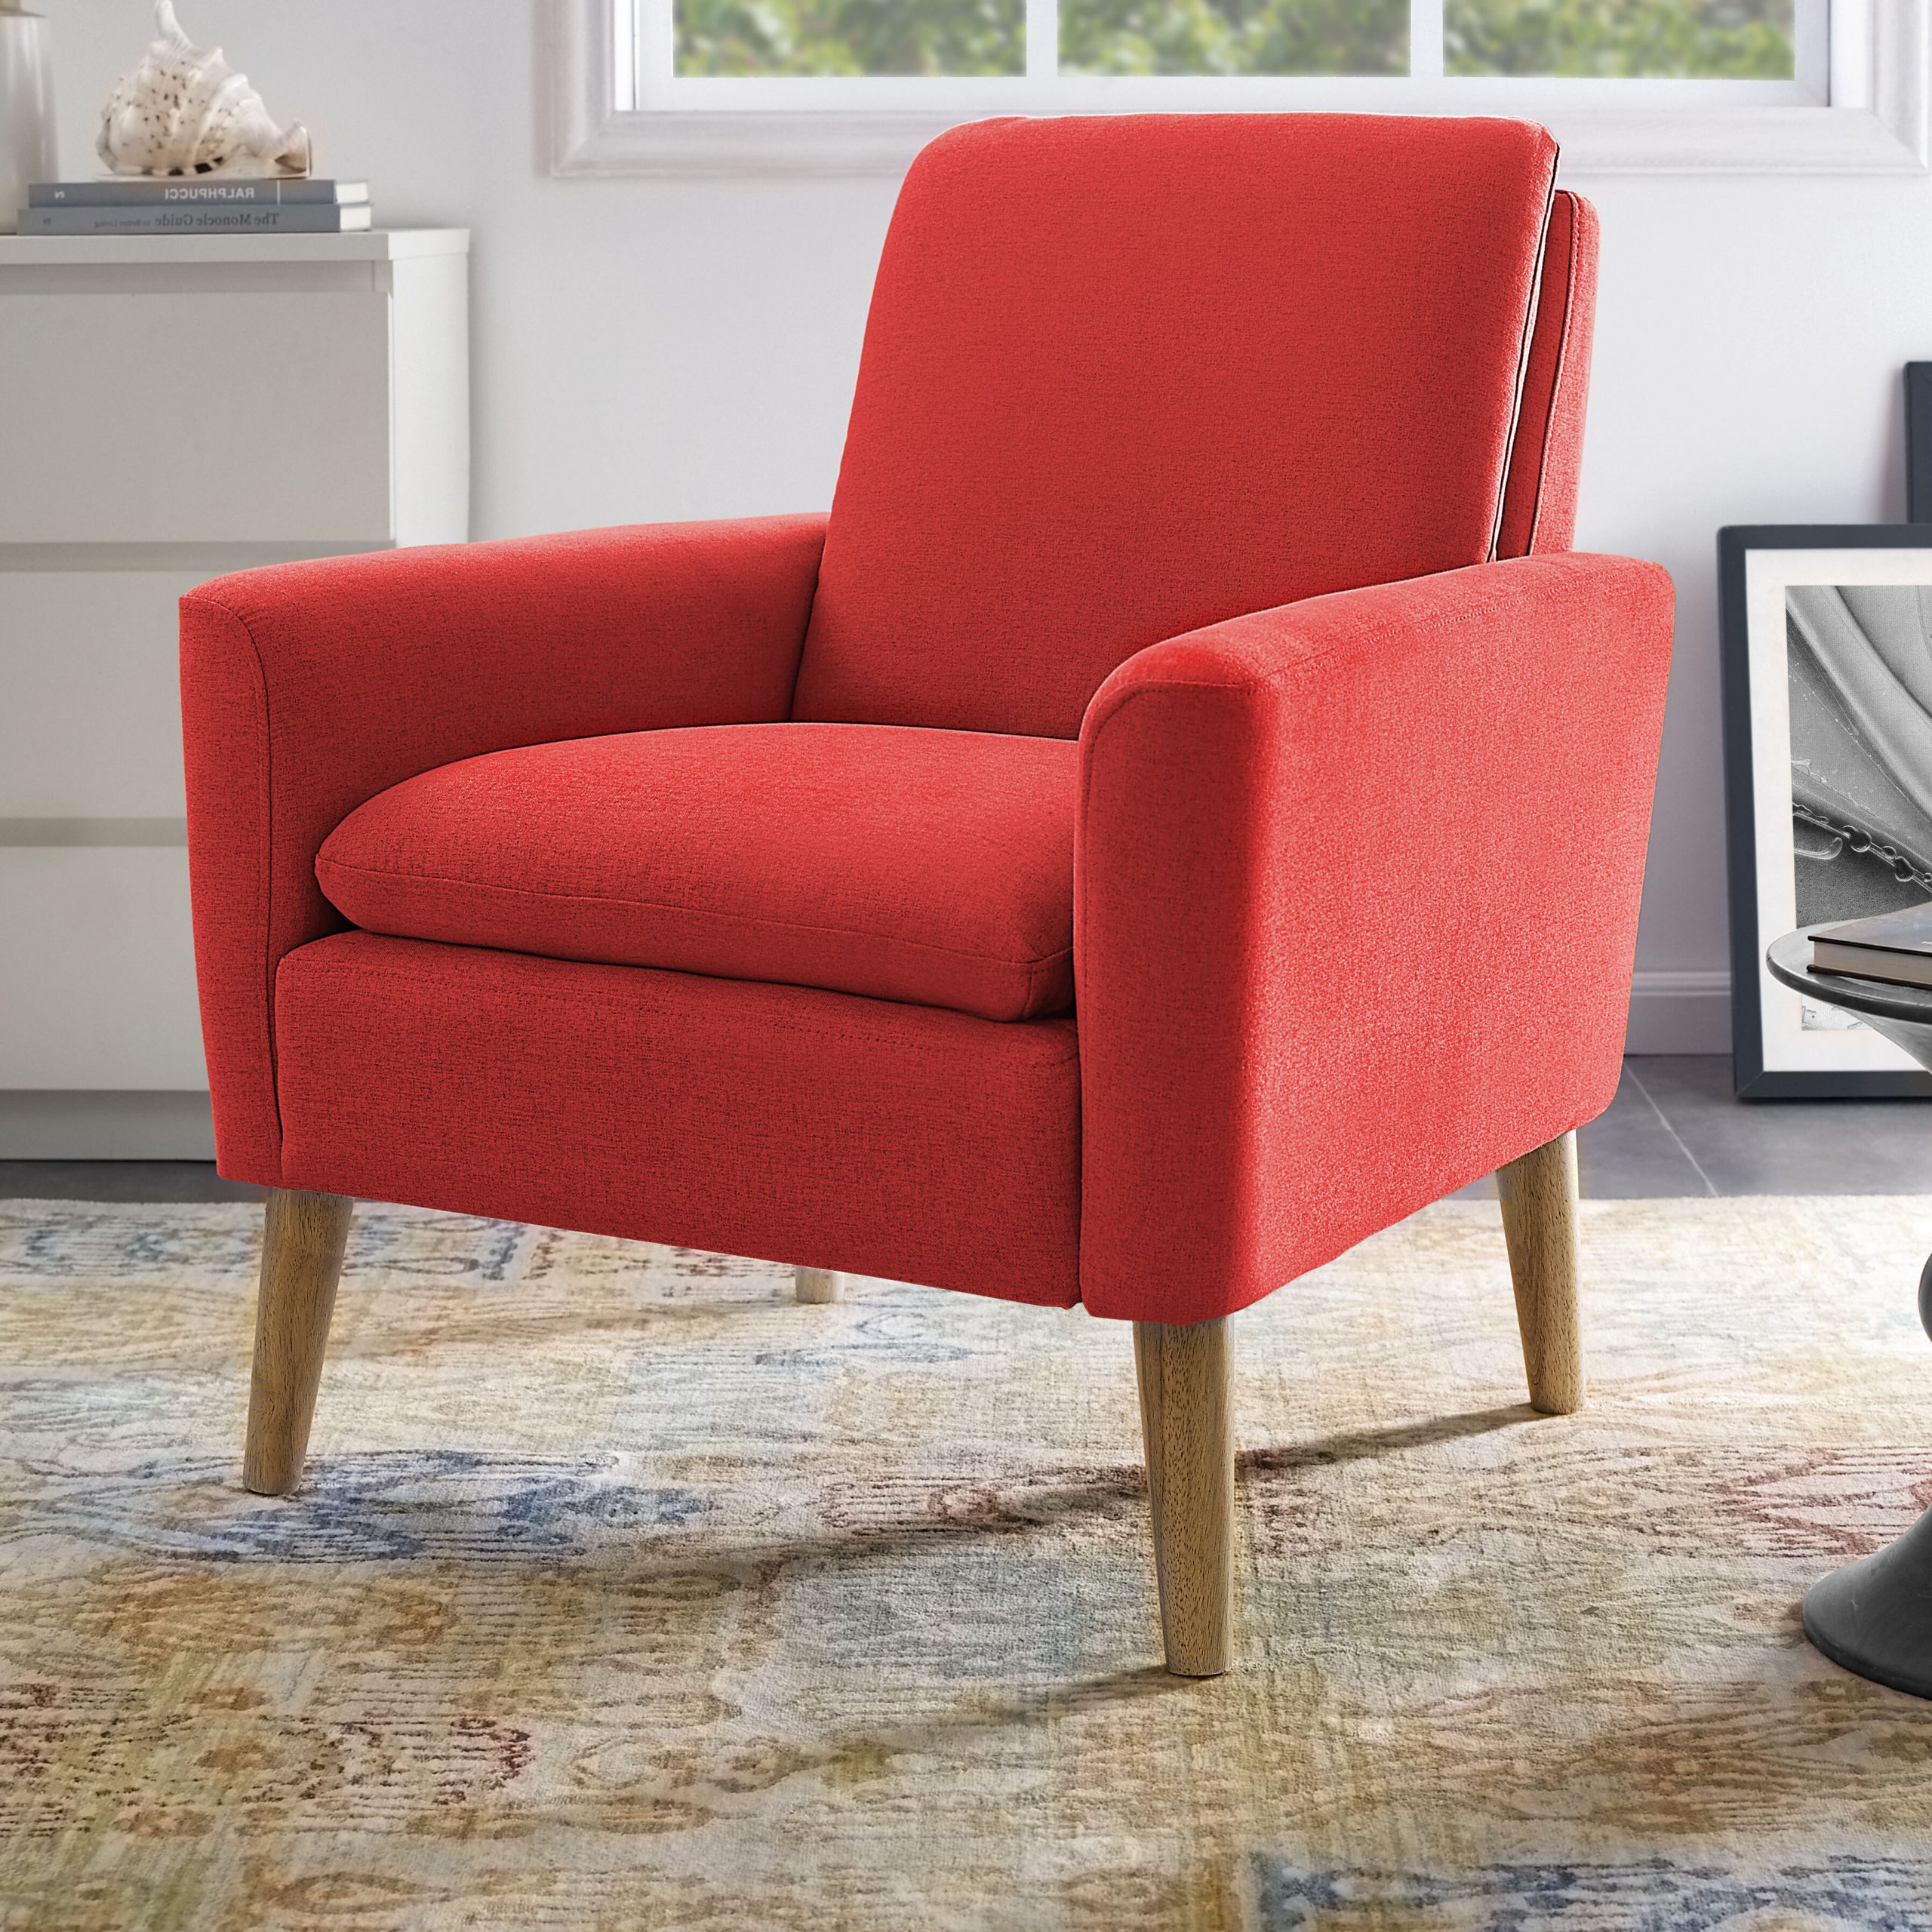 Orange Scandinavian Accent Chairs You'Ll Love In 2021 | Wayfair For Harmoni Armchairs (View 3 of 15)